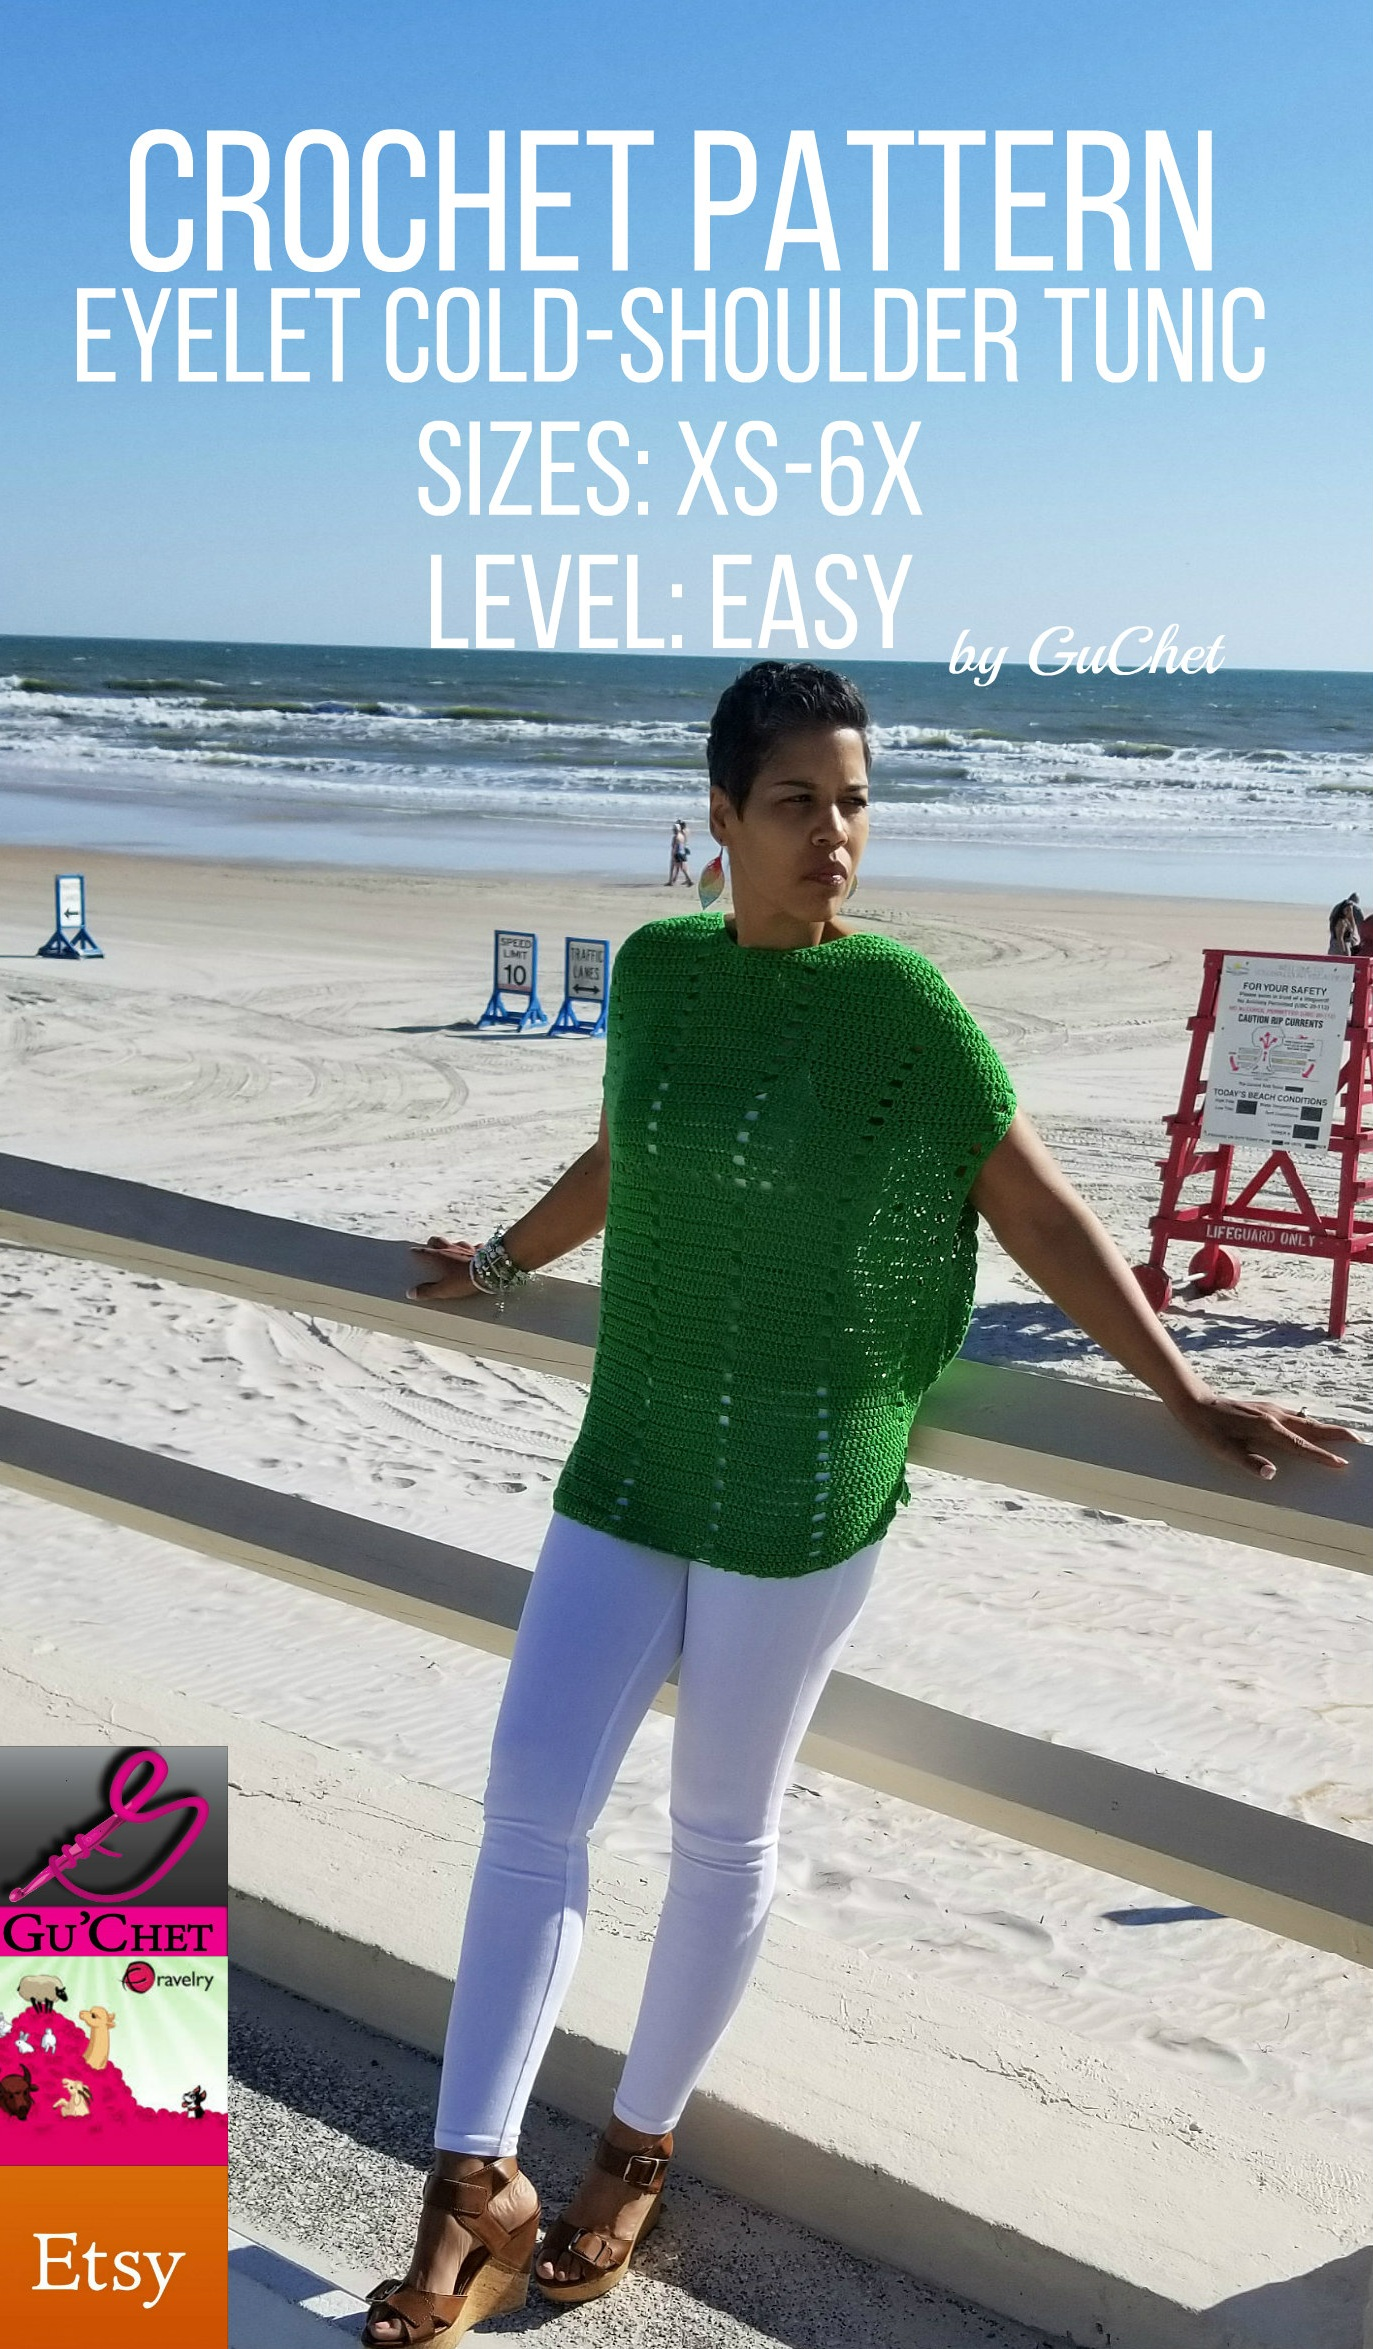 Crochet Top Pattern - Crochet Tunic Pattern - Eyelet Cold Shoulder Top - Crochet Shirt Pattern - Plus Size Crochet - Digital Download Guchet